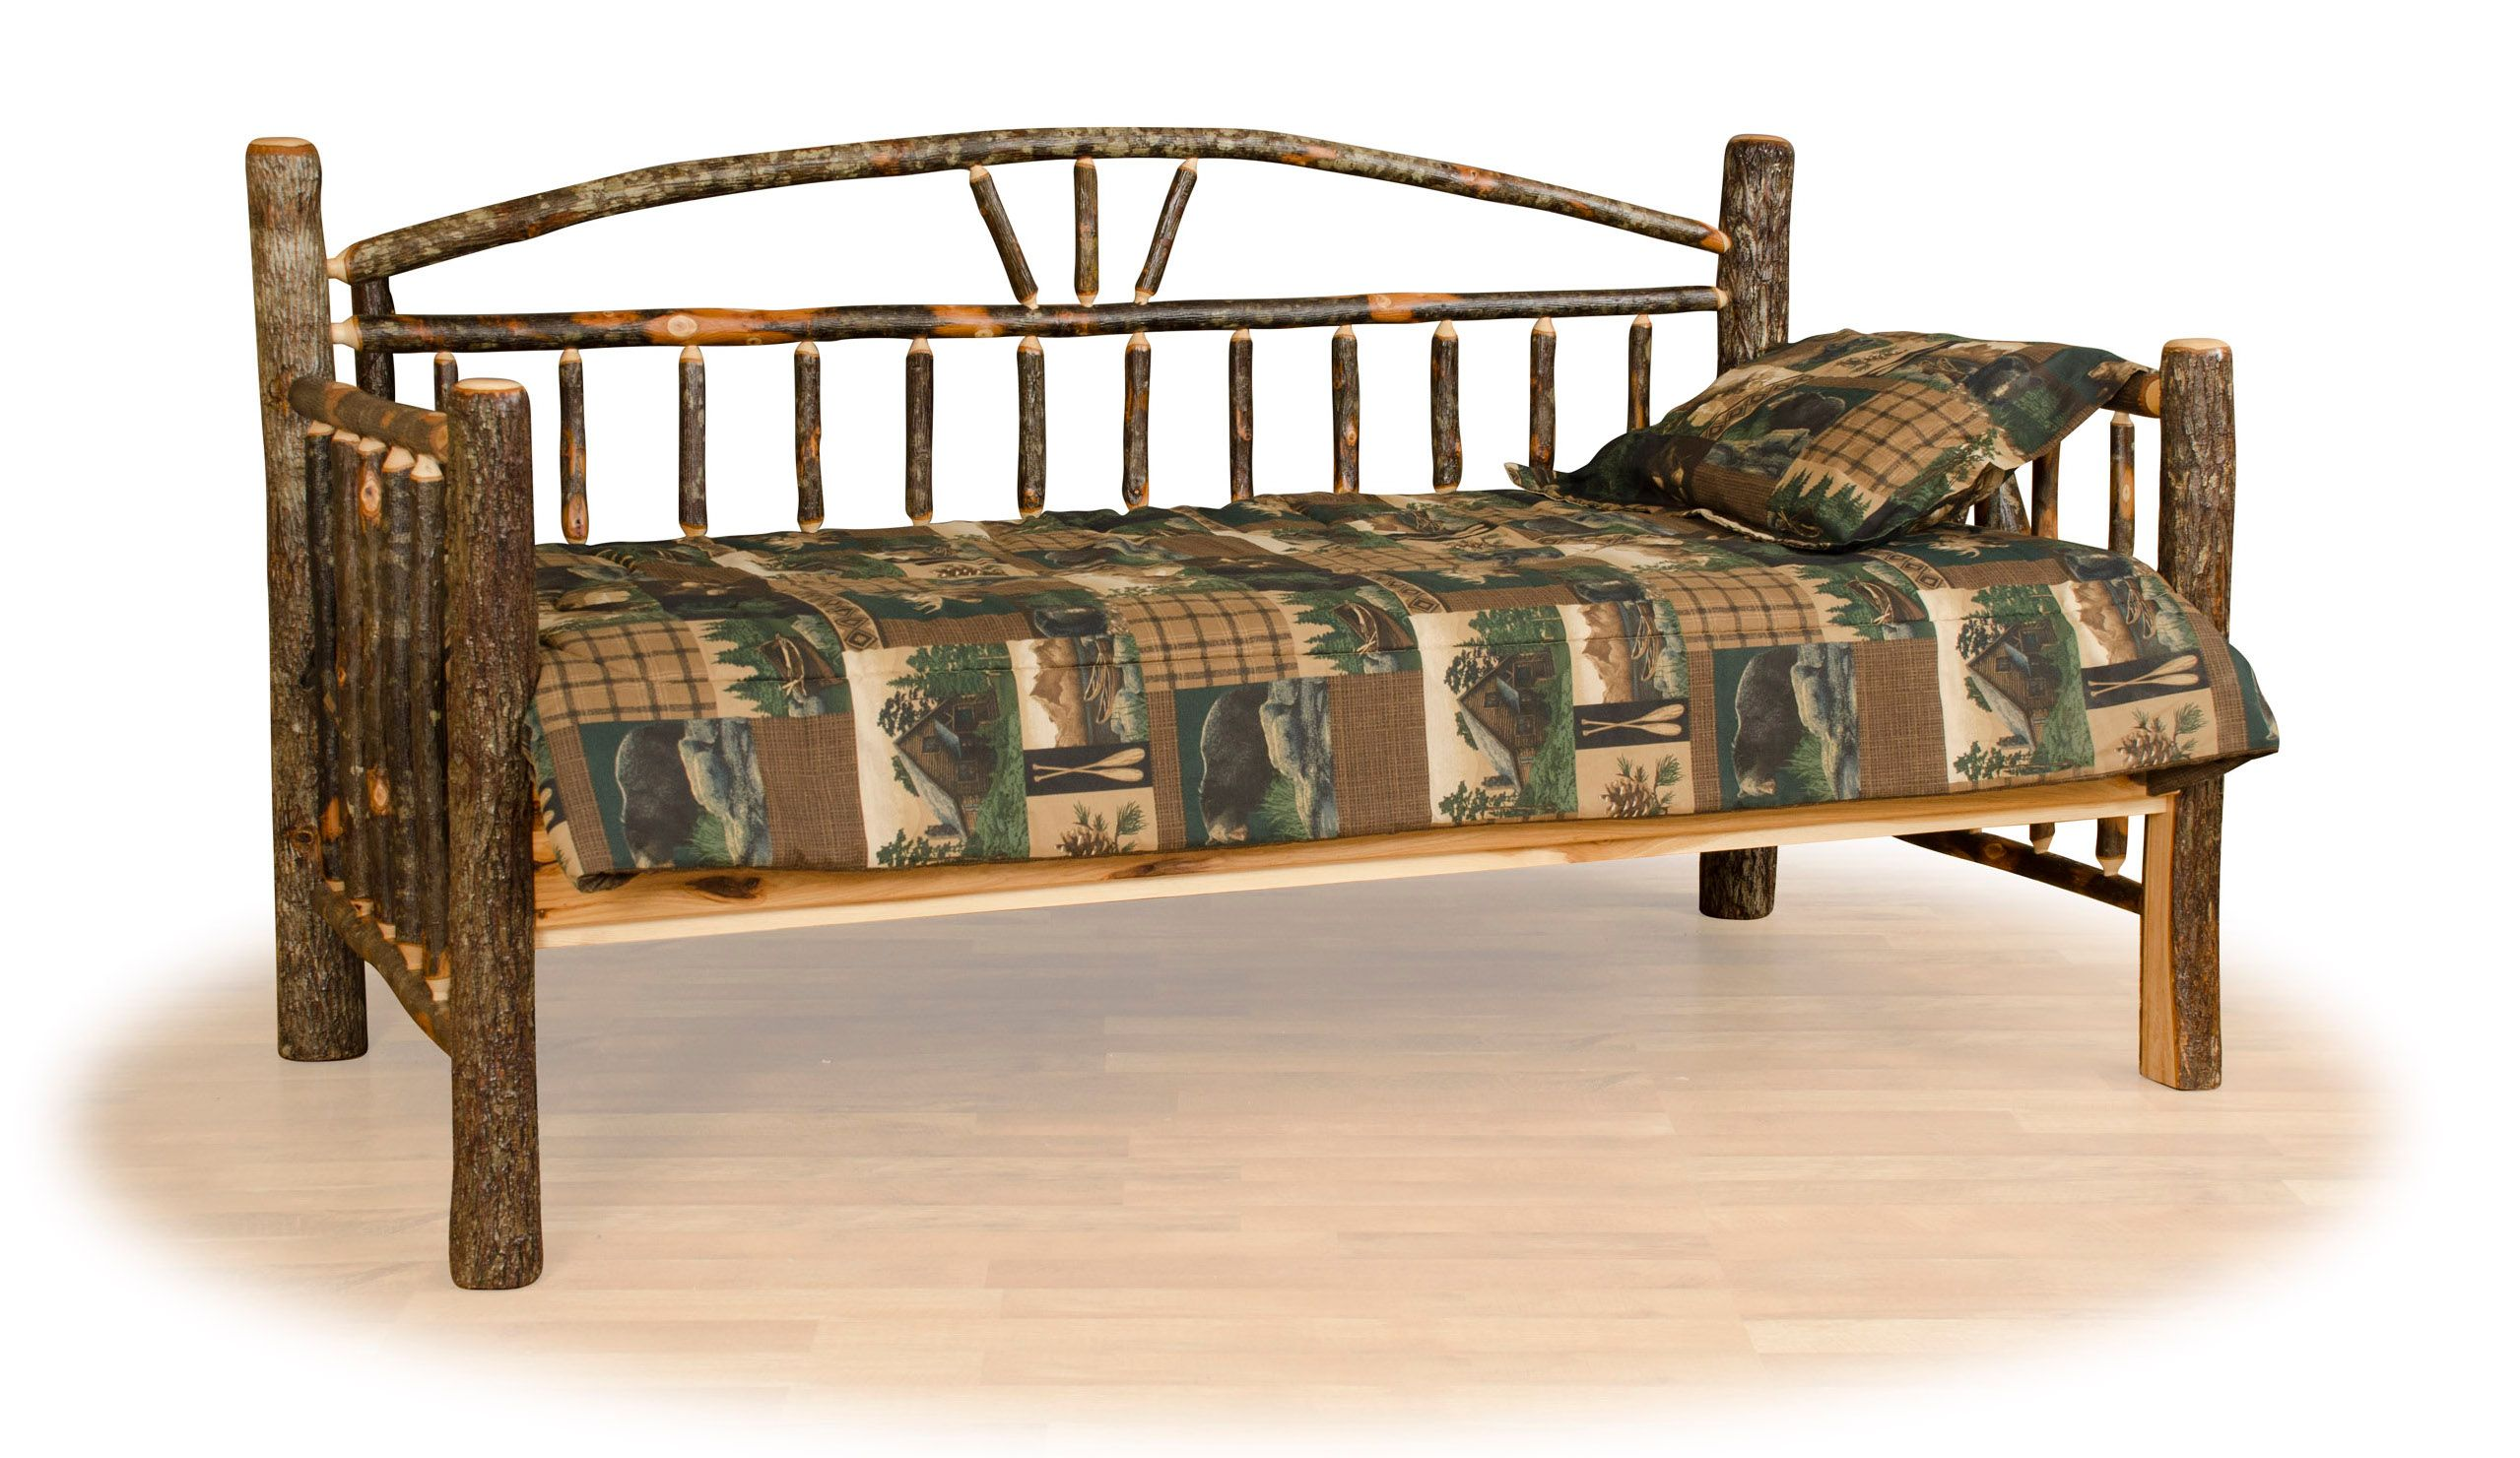 Rustic hickory log day bed.  Great rustic country styling for a log cabin, mountain lodge, or country cottage.  Authentic, Amish made in the USA.